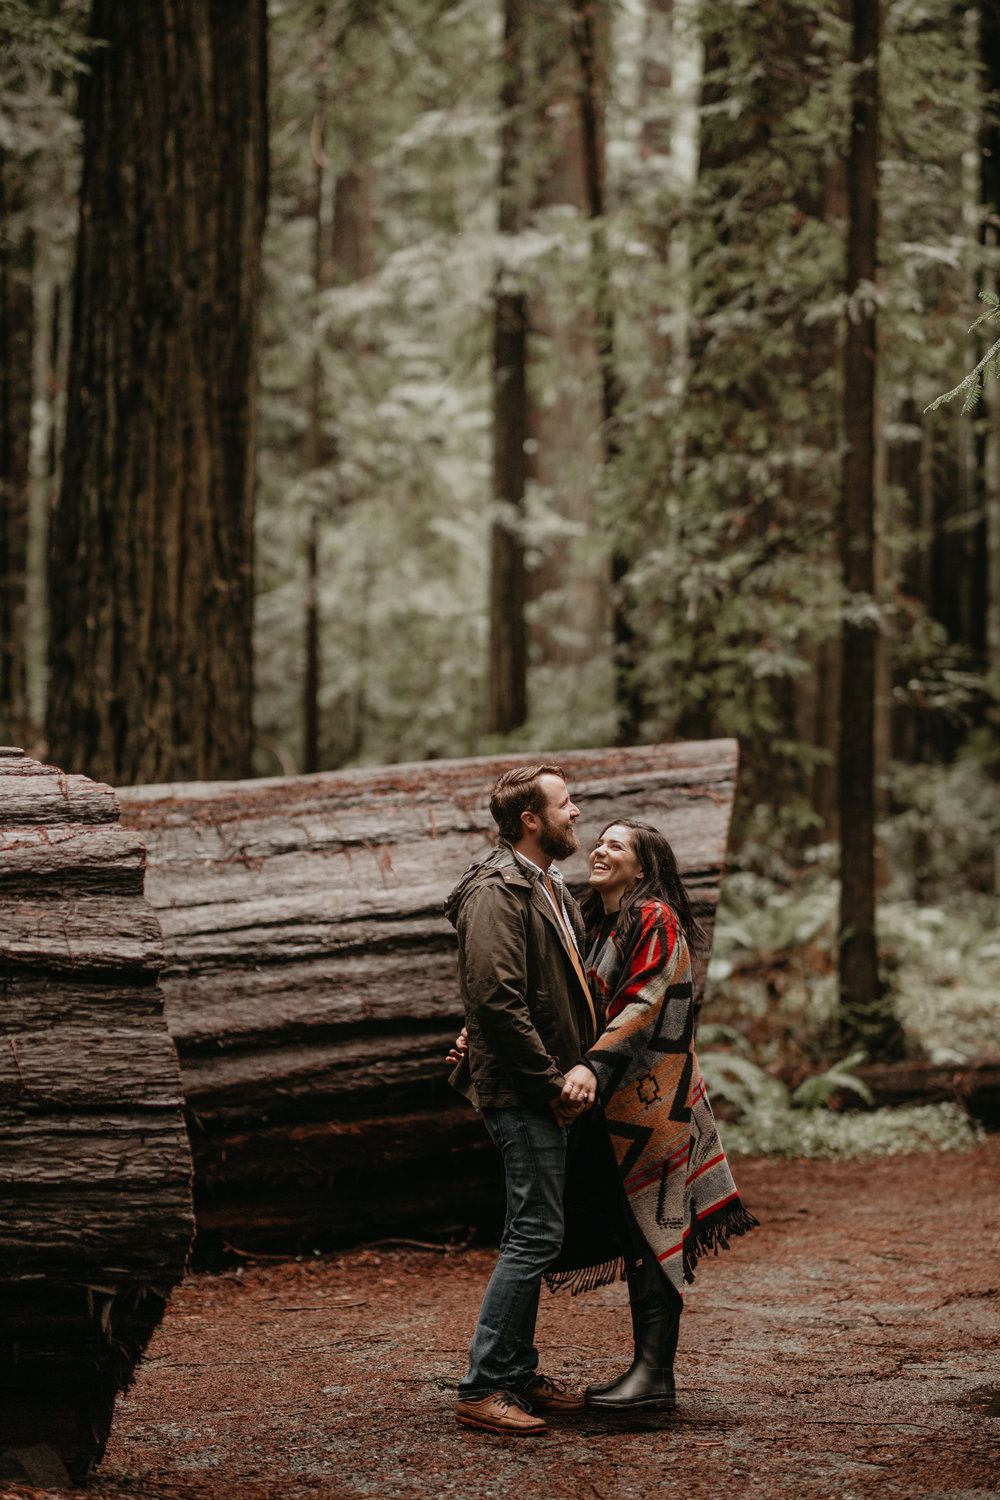 nicole-daacke-photography-redwoods-national-park-forest-rainy-foggy-adventure-engagement-session-humboldt-county-old-growth-redwood-tree-elopement-intimate-wedding-photographer-16.jpg